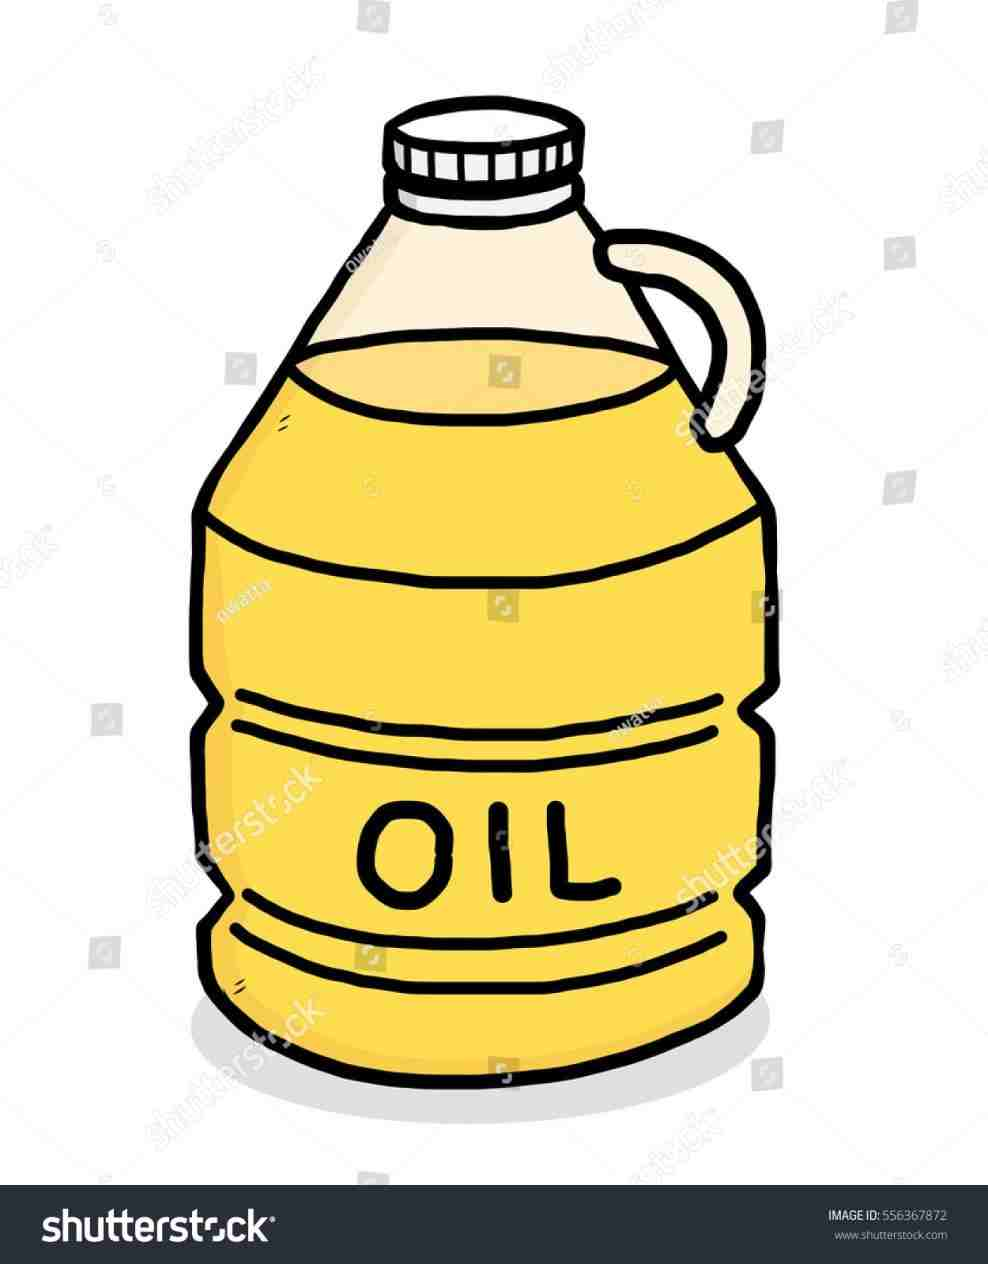 A bottel of oil clipart clip art freeuse Vegetable Cooking Oil Clipart oil bottle cartoon » Clipart Station clip art freeuse